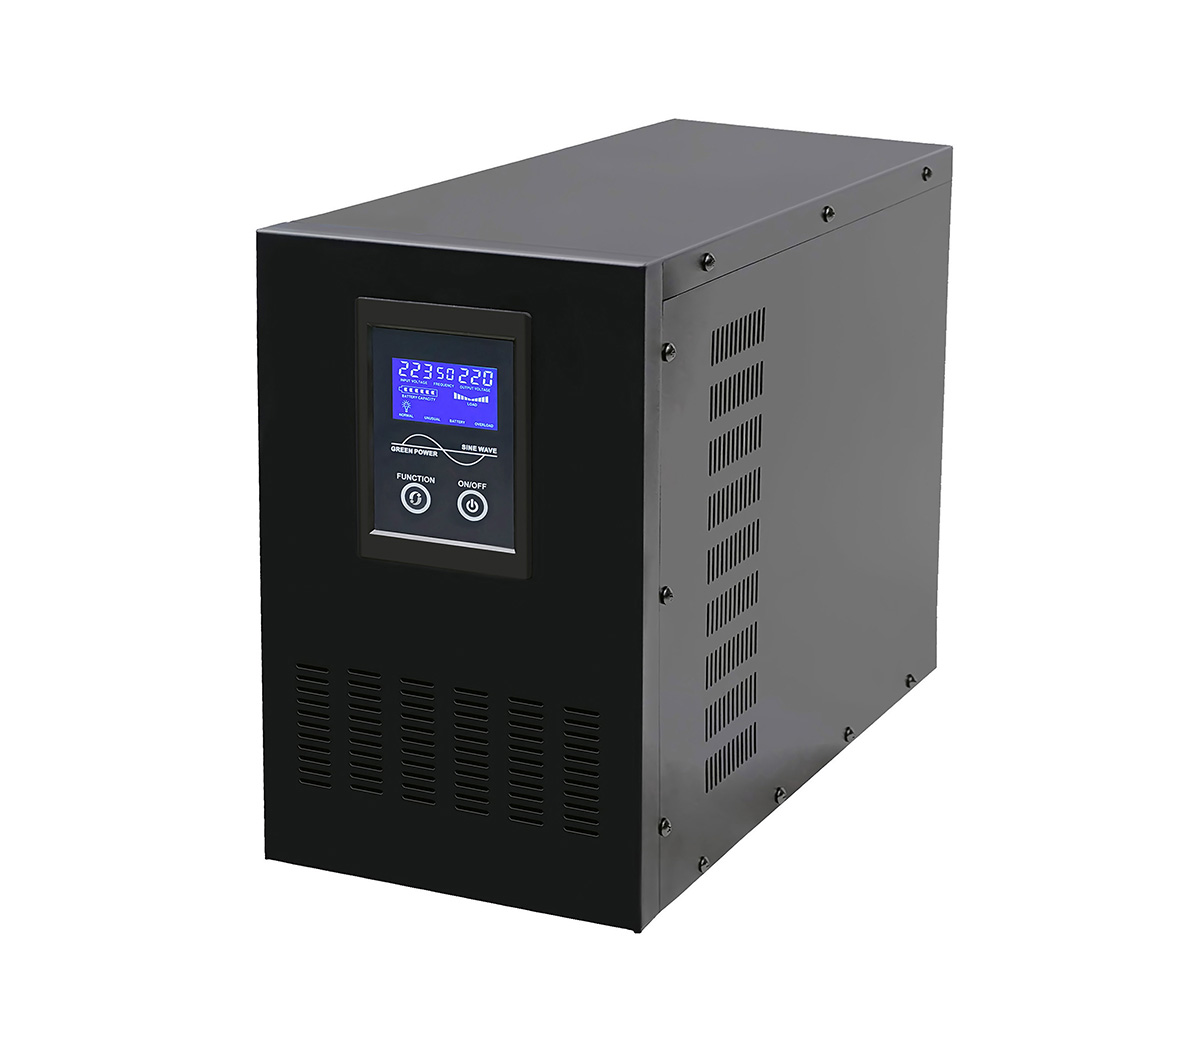 NB power inverter